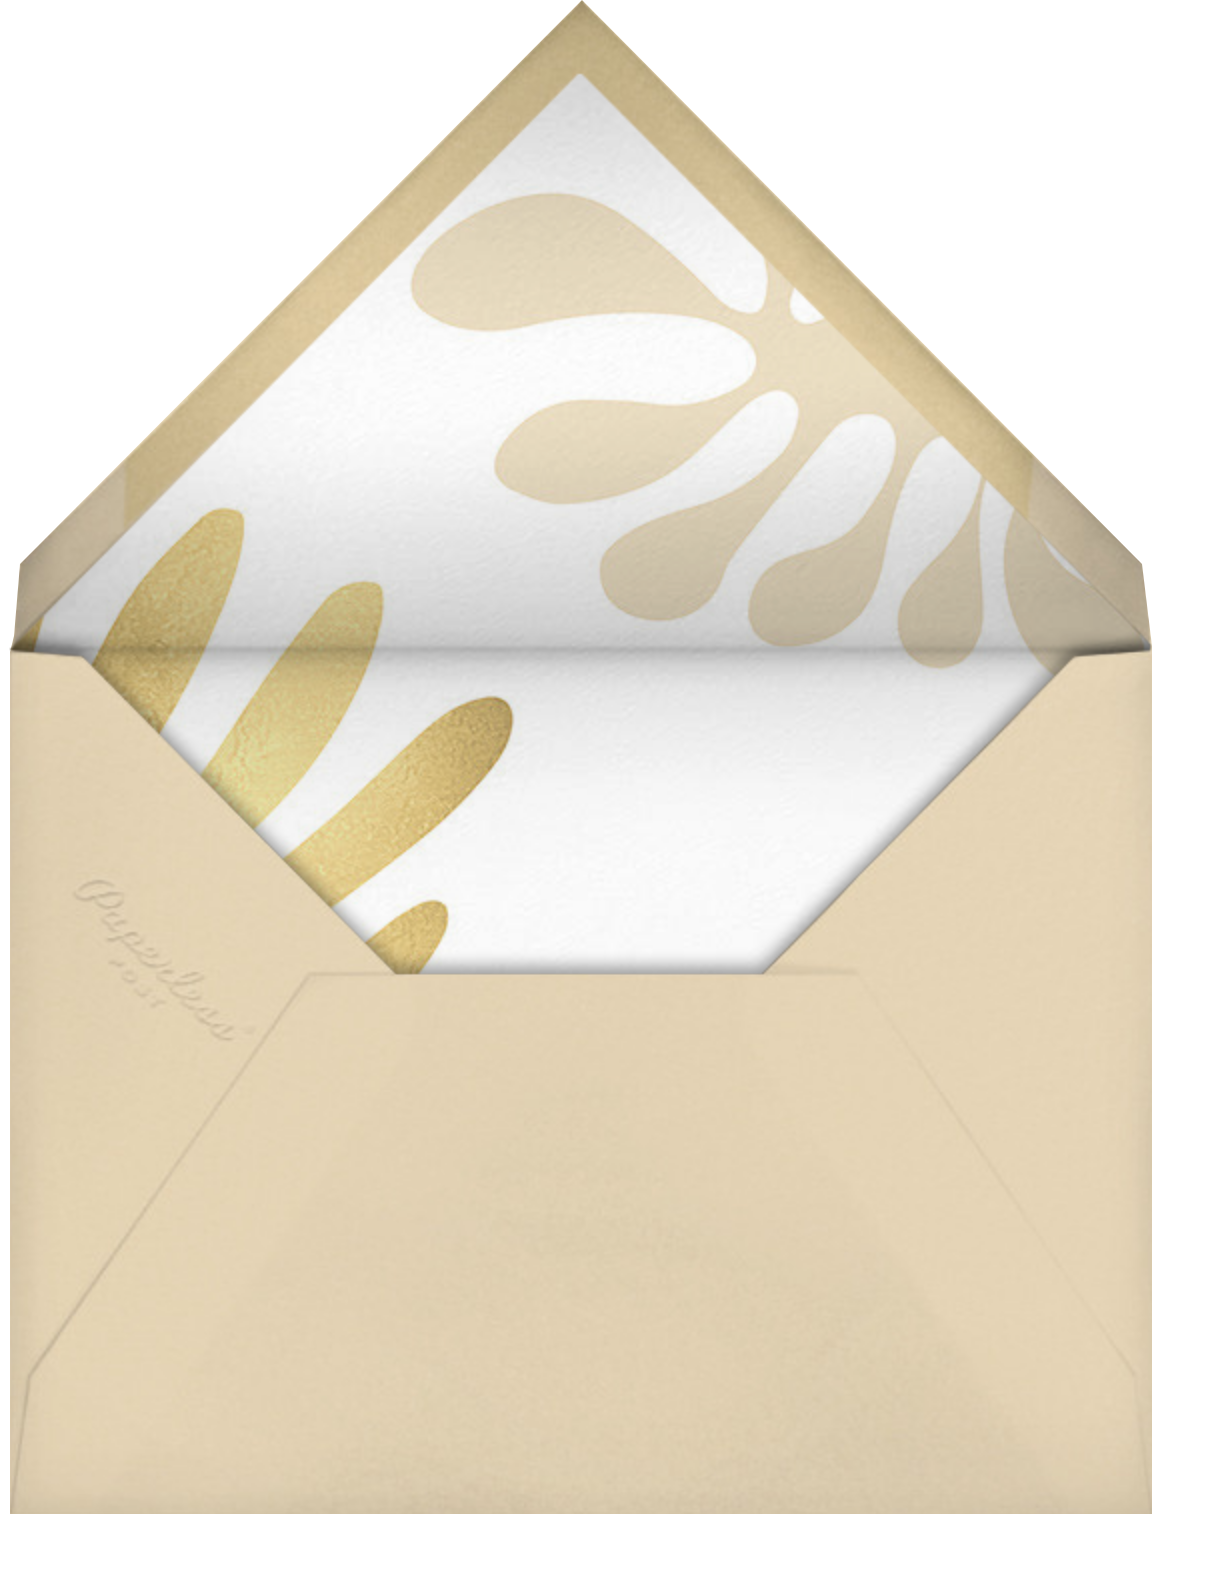 Fauves D'Or (Invitation) - Paperless Post - Adult birthday - envelope back